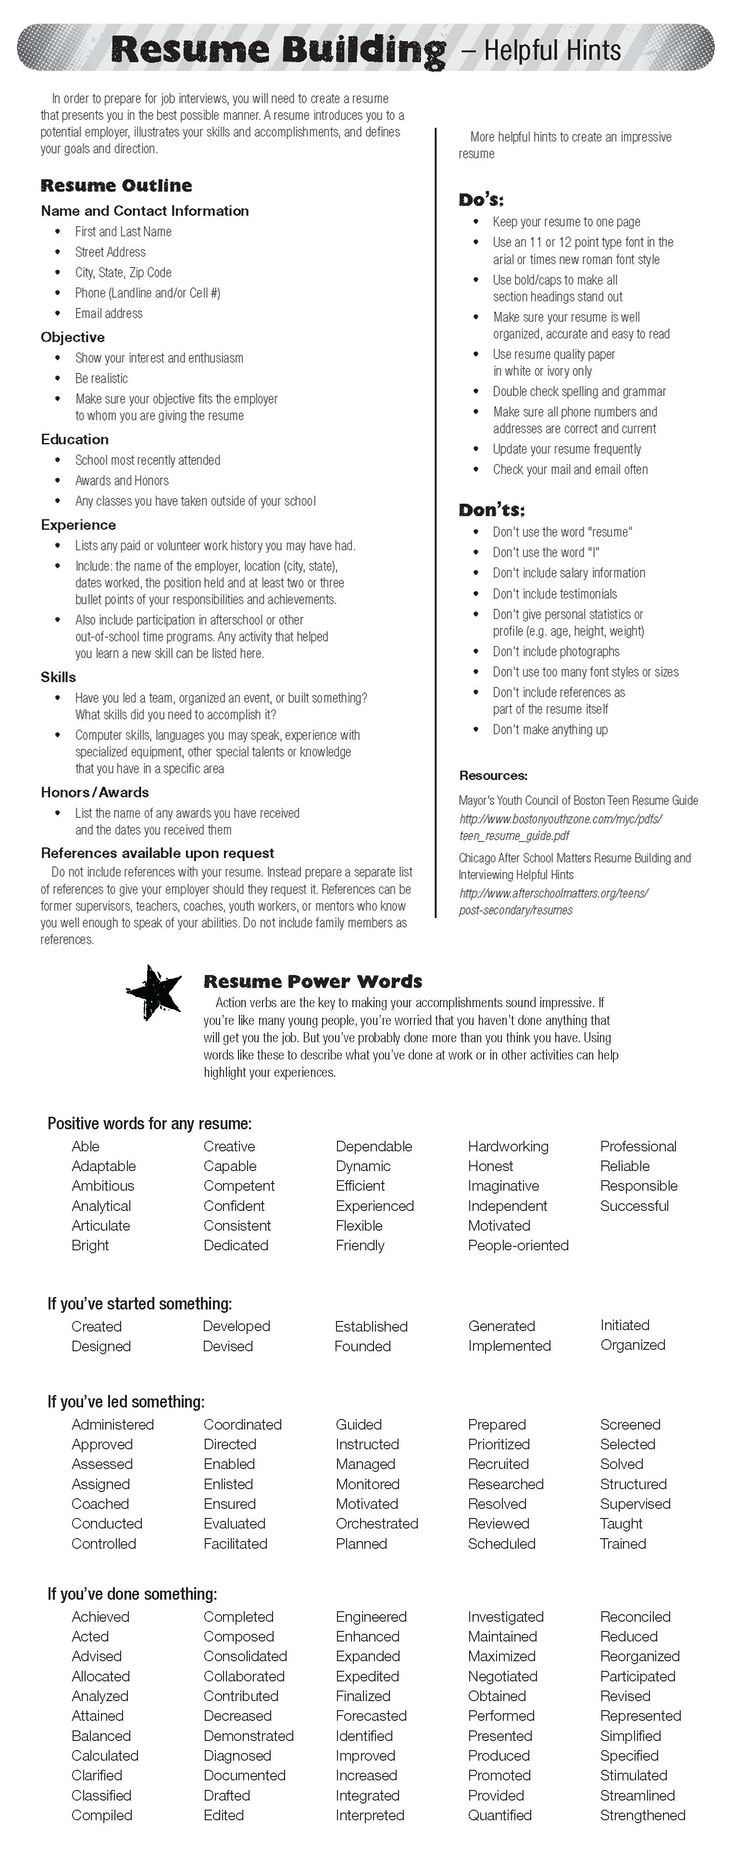 Opposenewapstandardsus  Remarkable  Ideas About Resume On Pinterest  Cv Format Resume Cv And  With Gorgeous  Ideas About Resume On Pinterest  Cv Format Resume Cv And Resume Templates With Cool I Need To Make A Resume Also Software Skills For Resume In Addition Free Resume Template Download For Word And Career Center Resume As Well As Should You Put Your Address On Your Resume Additionally Resume Interests Section From Pinterestcom With Opposenewapstandardsus  Gorgeous  Ideas About Resume On Pinterest  Cv Format Resume Cv And  With Cool  Ideas About Resume On Pinterest  Cv Format Resume Cv And Resume Templates And Remarkable I Need To Make A Resume Also Software Skills For Resume In Addition Free Resume Template Download For Word From Pinterestcom